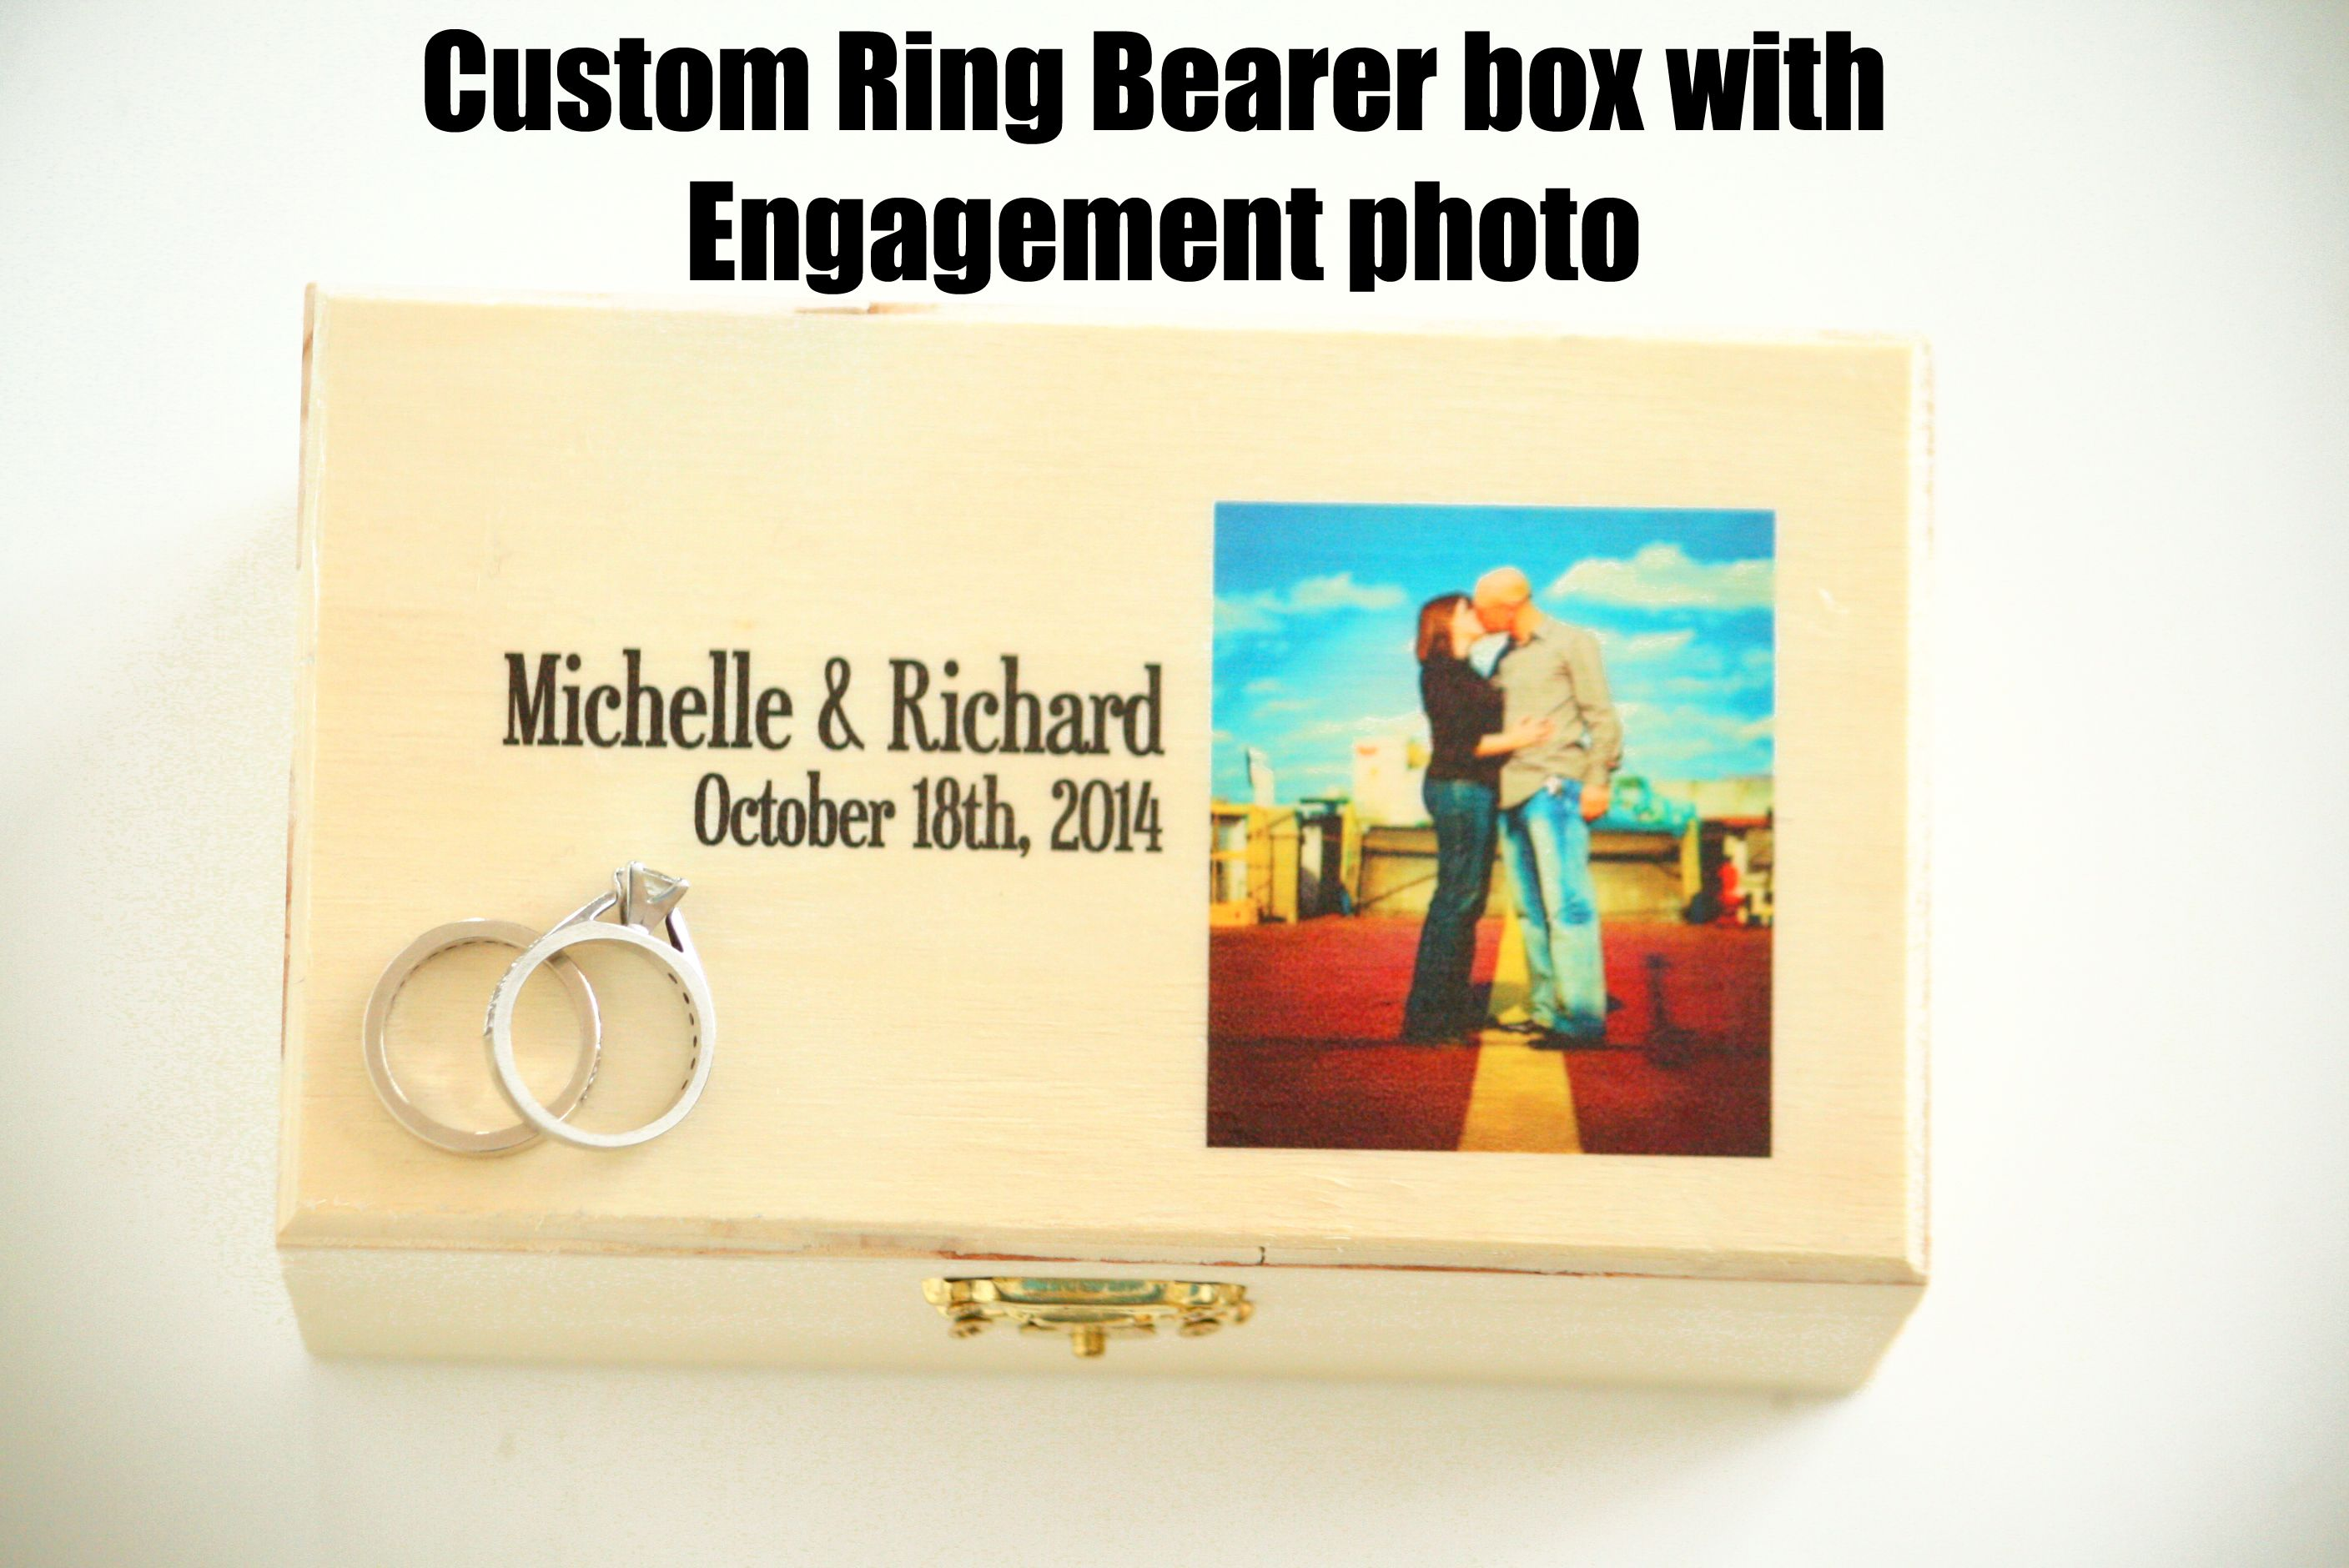 Customized ring bearer box with your engagement photo!  From Little Wee Shop on Etsy.  https://www.etsy.com/shop/LittleWeeShop?ref=si_shop